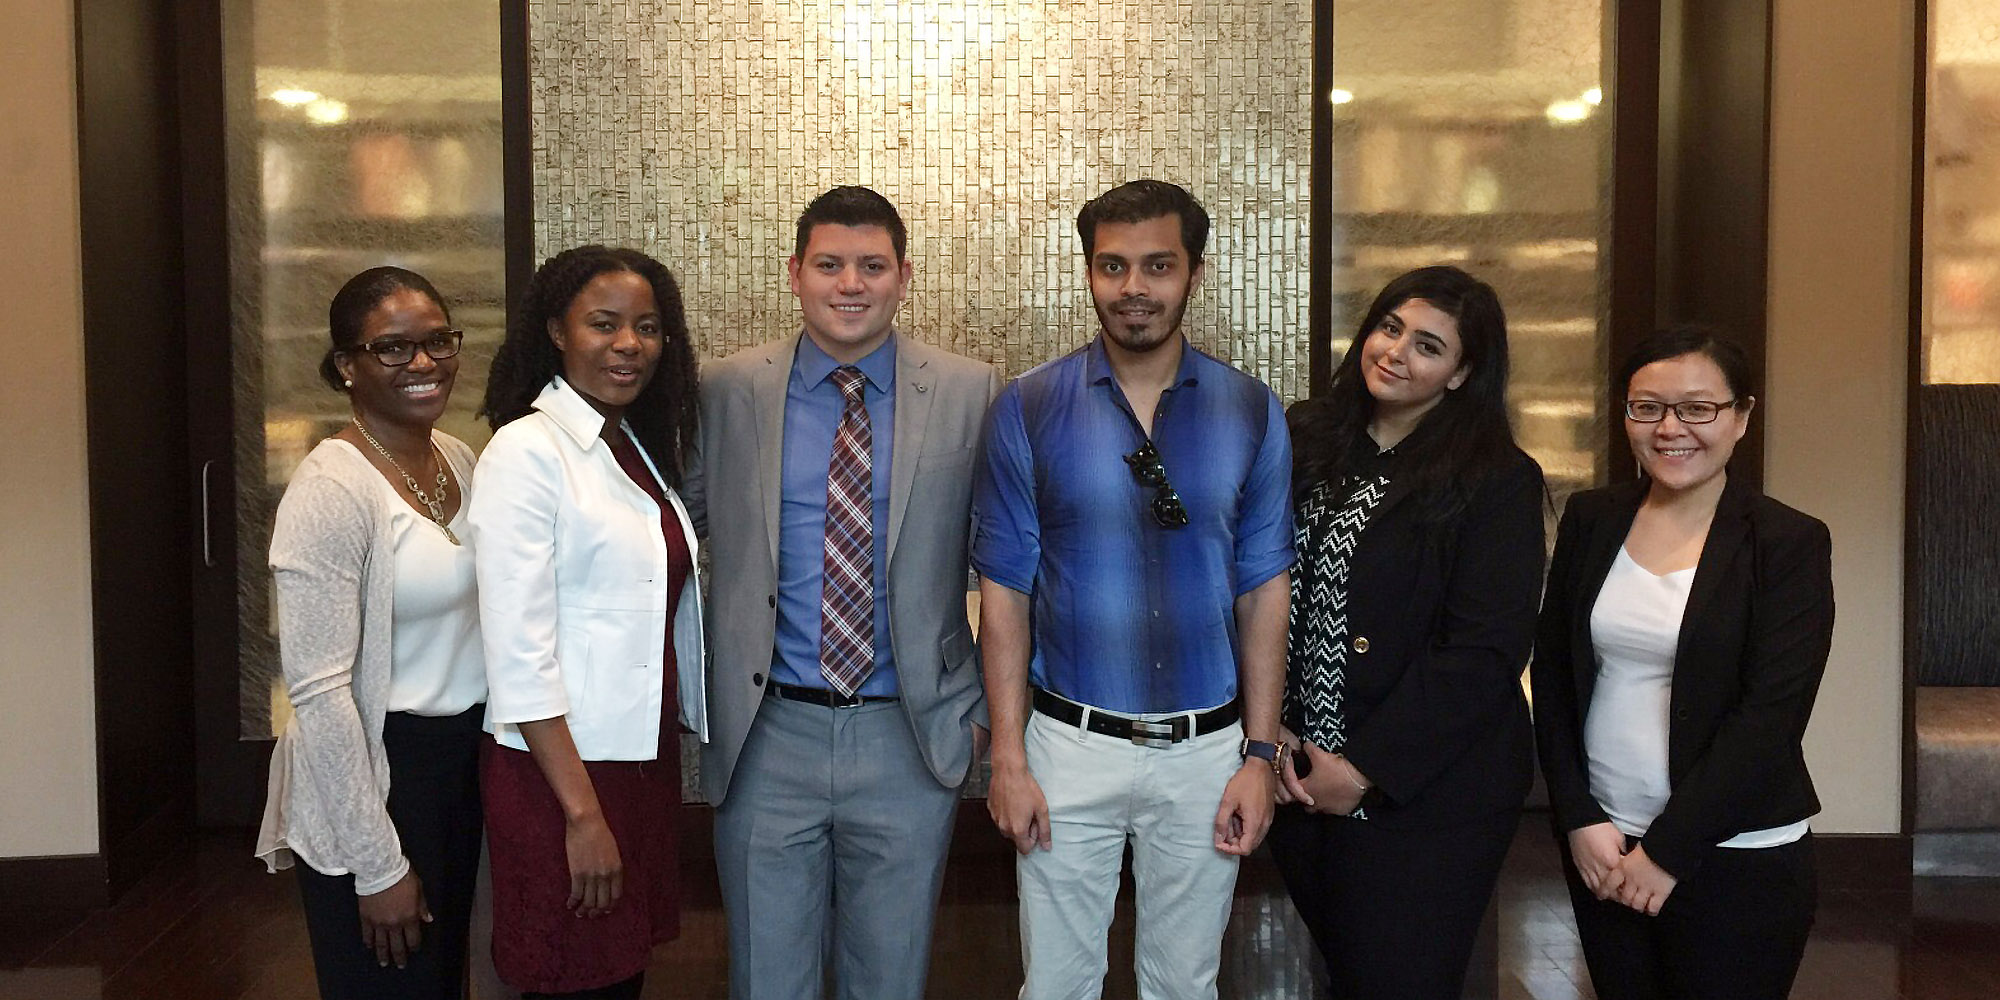 Hospitality Graduate Students in New York Hotel